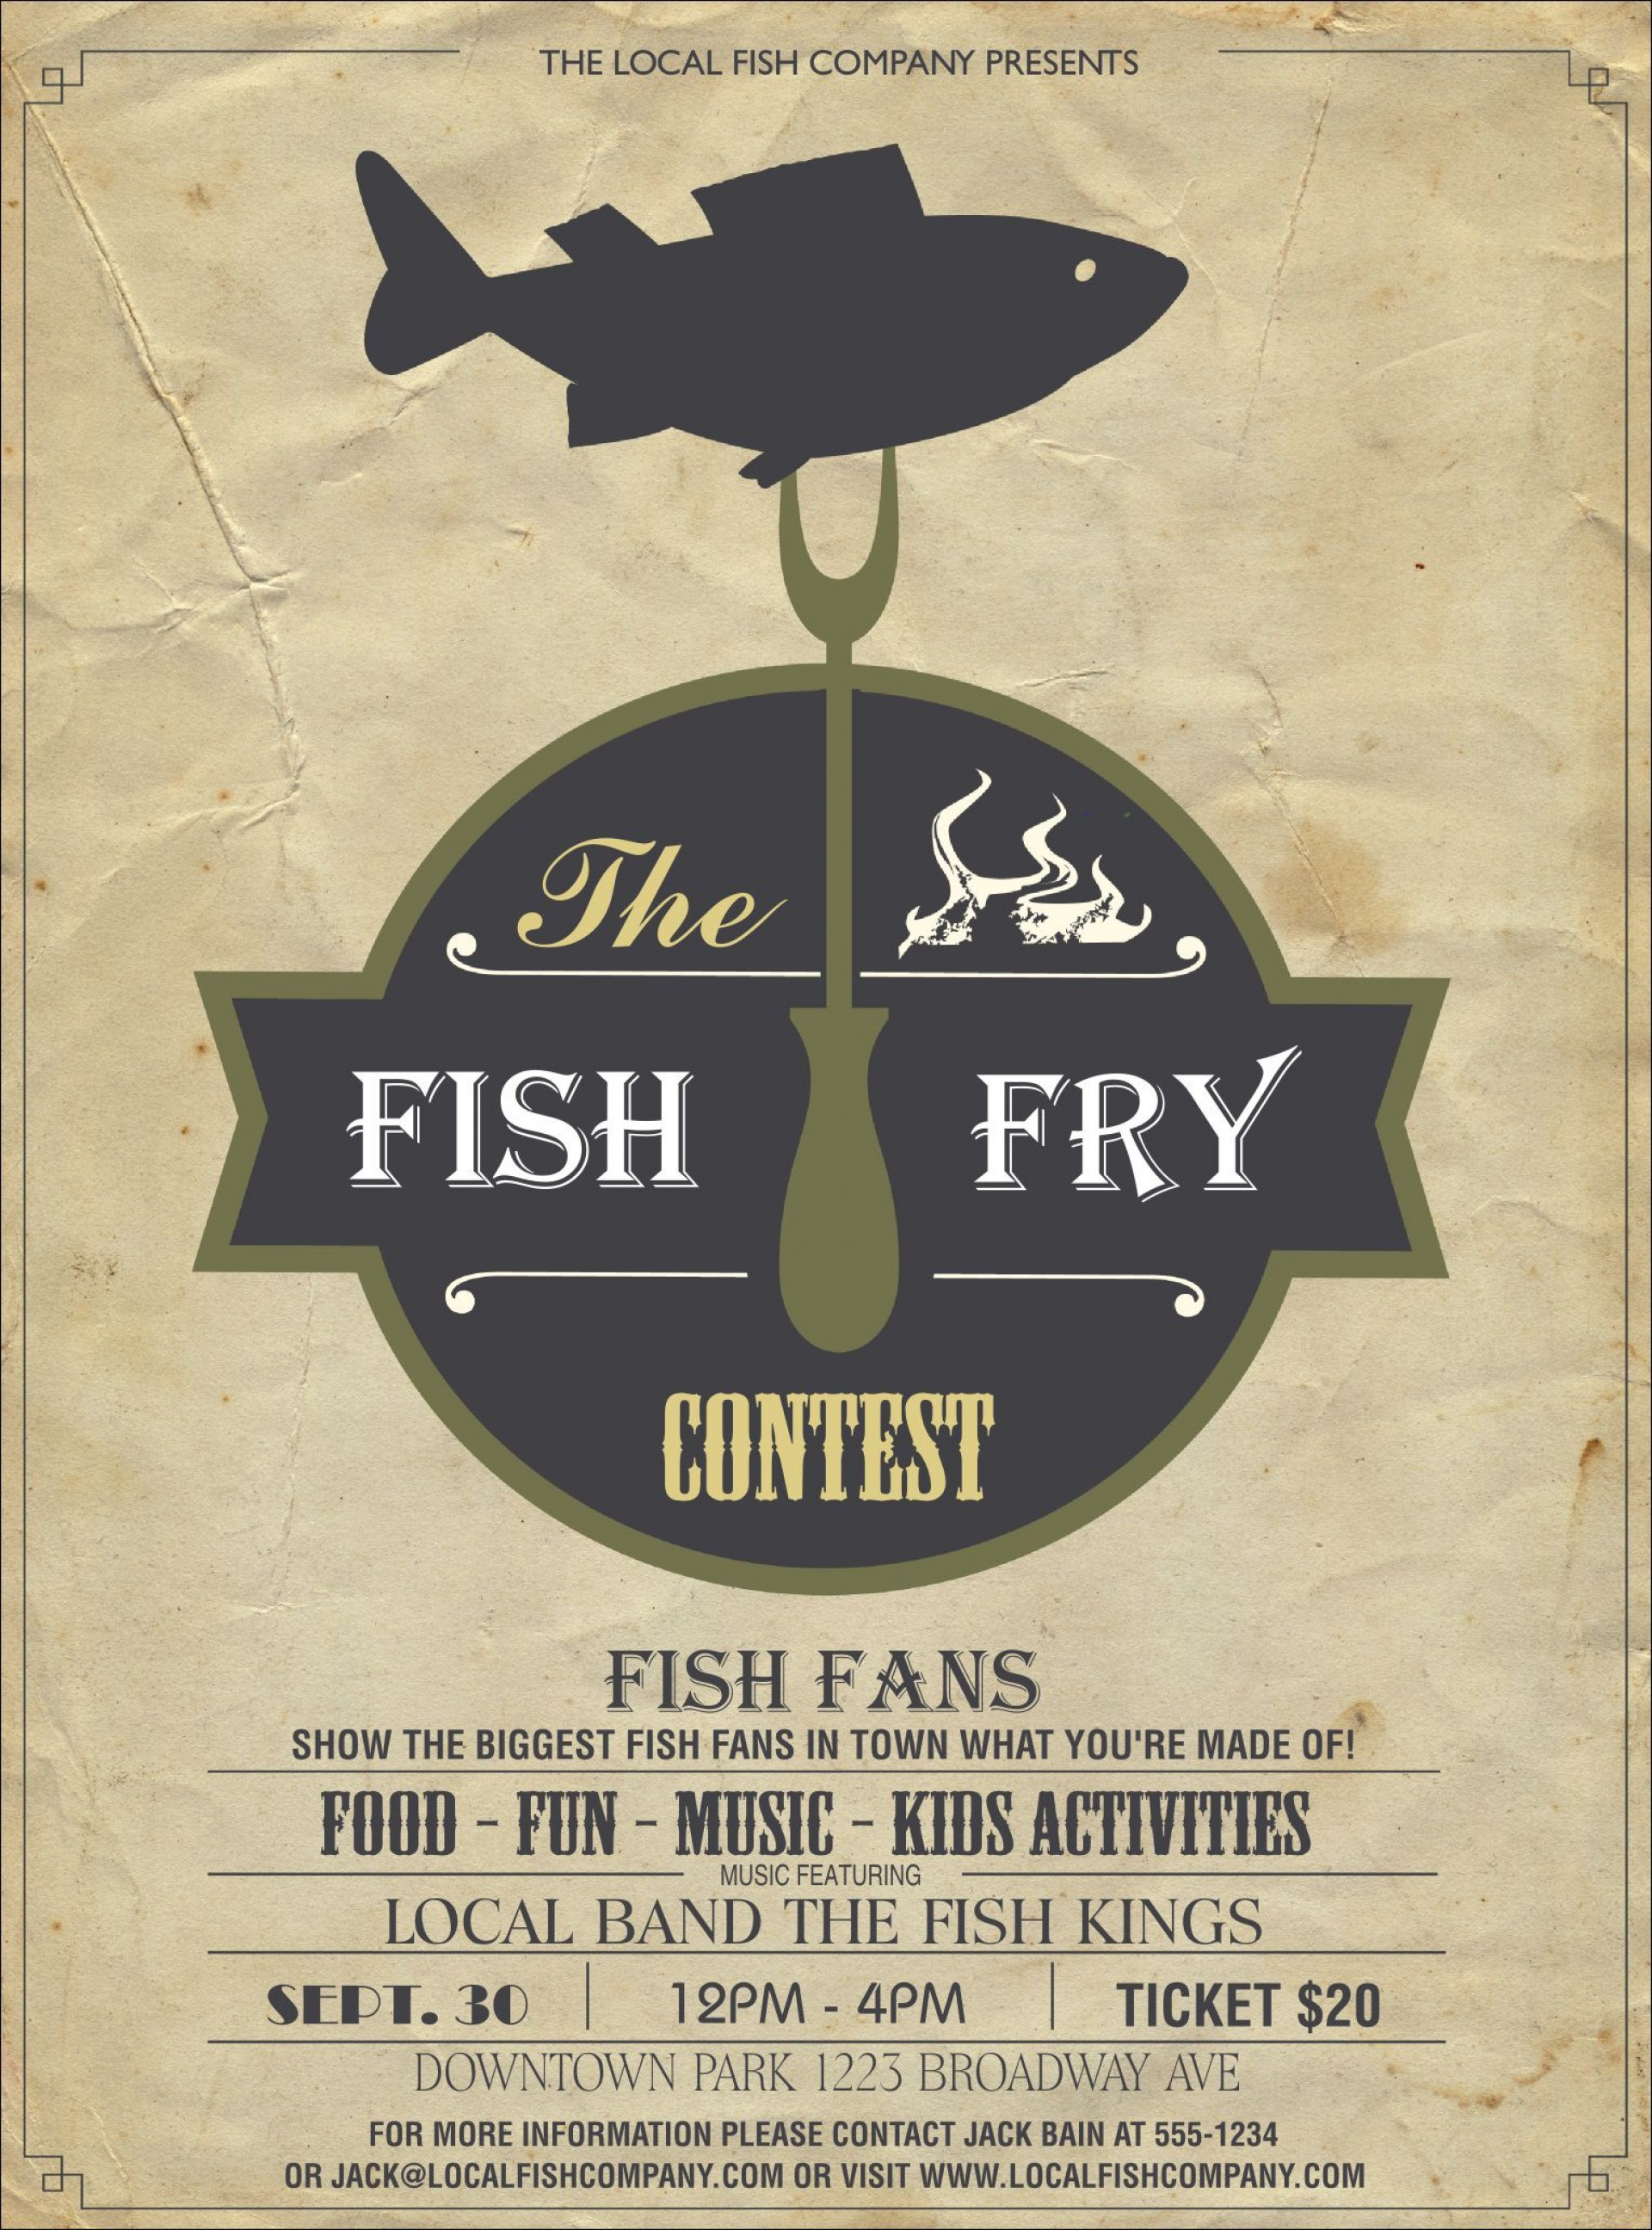 010 Excellent Fish Fry Flyer Template Picture  Printable Free Powerpoint Psd1920